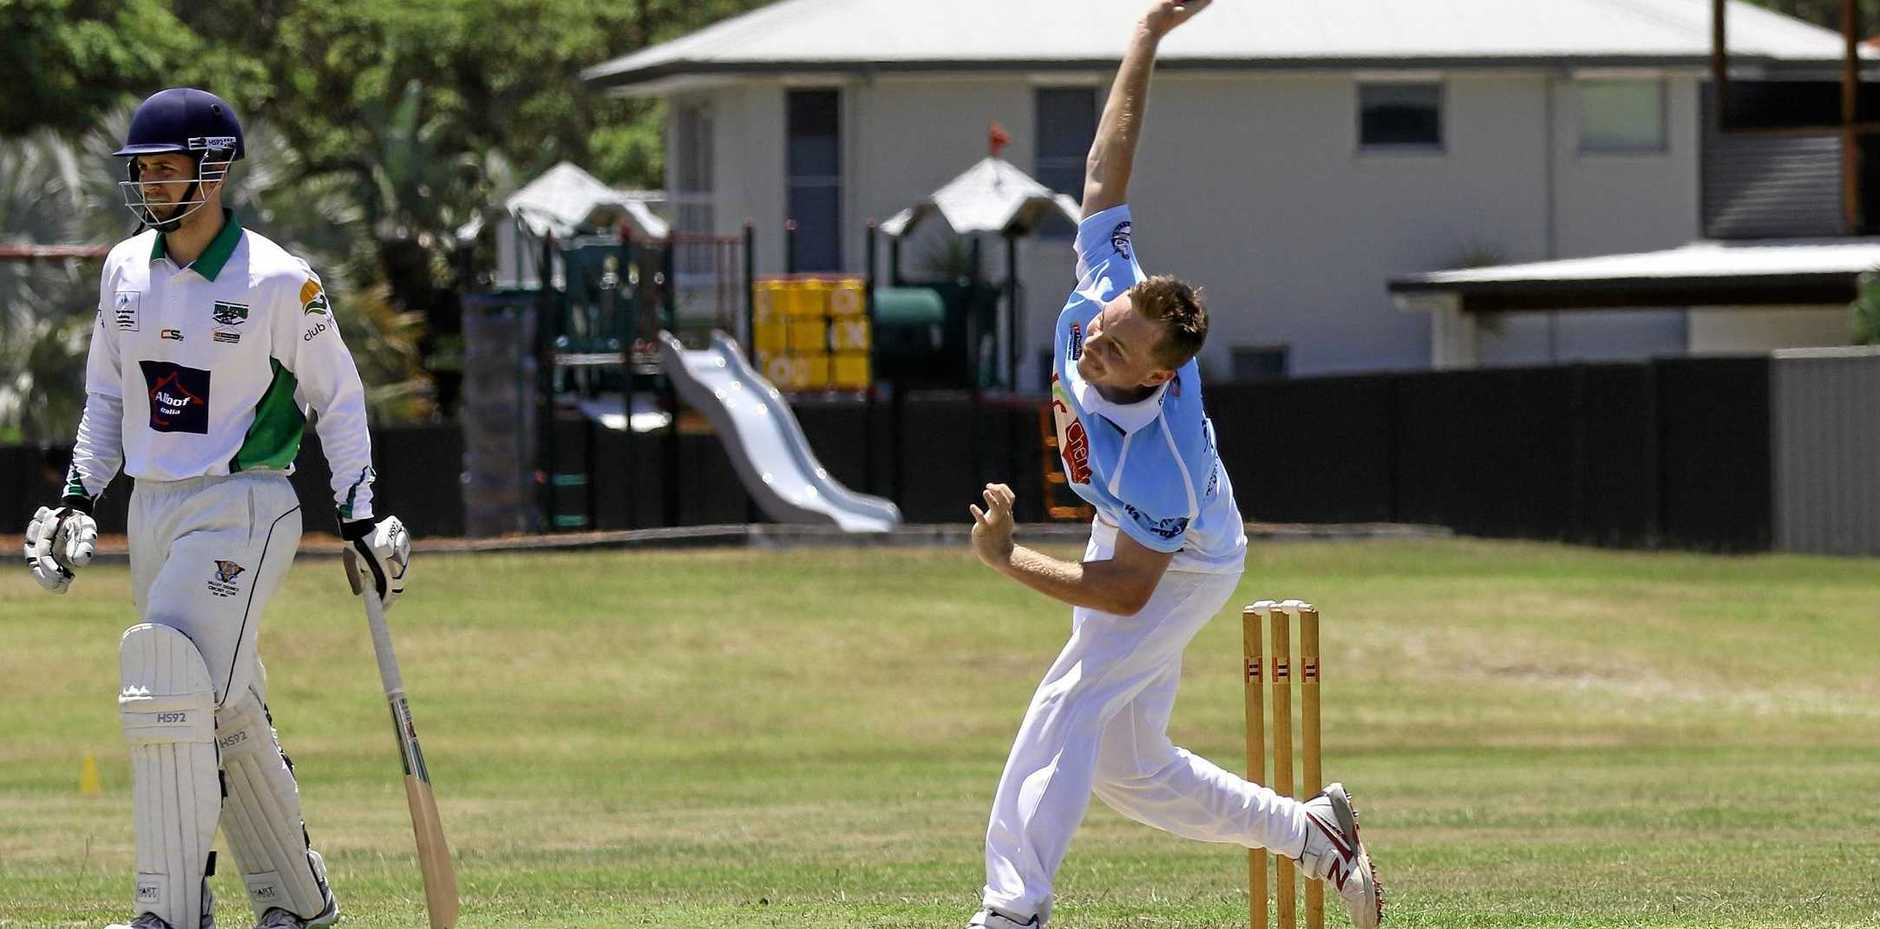 PACE THREAT: Ryan Lee in action for Ballina Bears in Far North Coast LJ Hooker League cricket last season. Lee is now back with his junior club Marist Brothers.